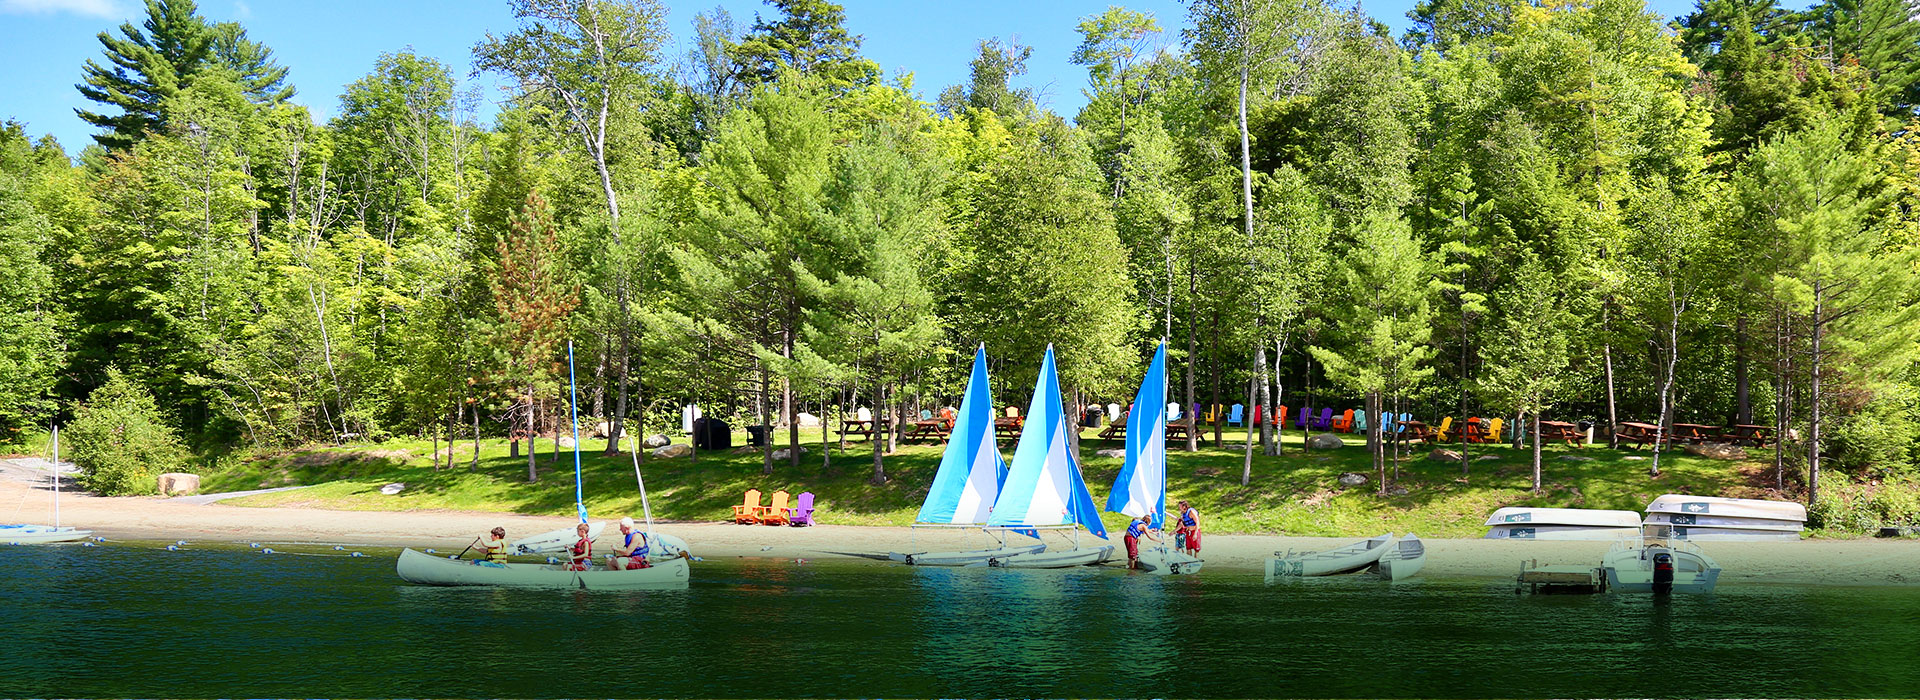 Enroll at Brant Lake Summer Camp in New York